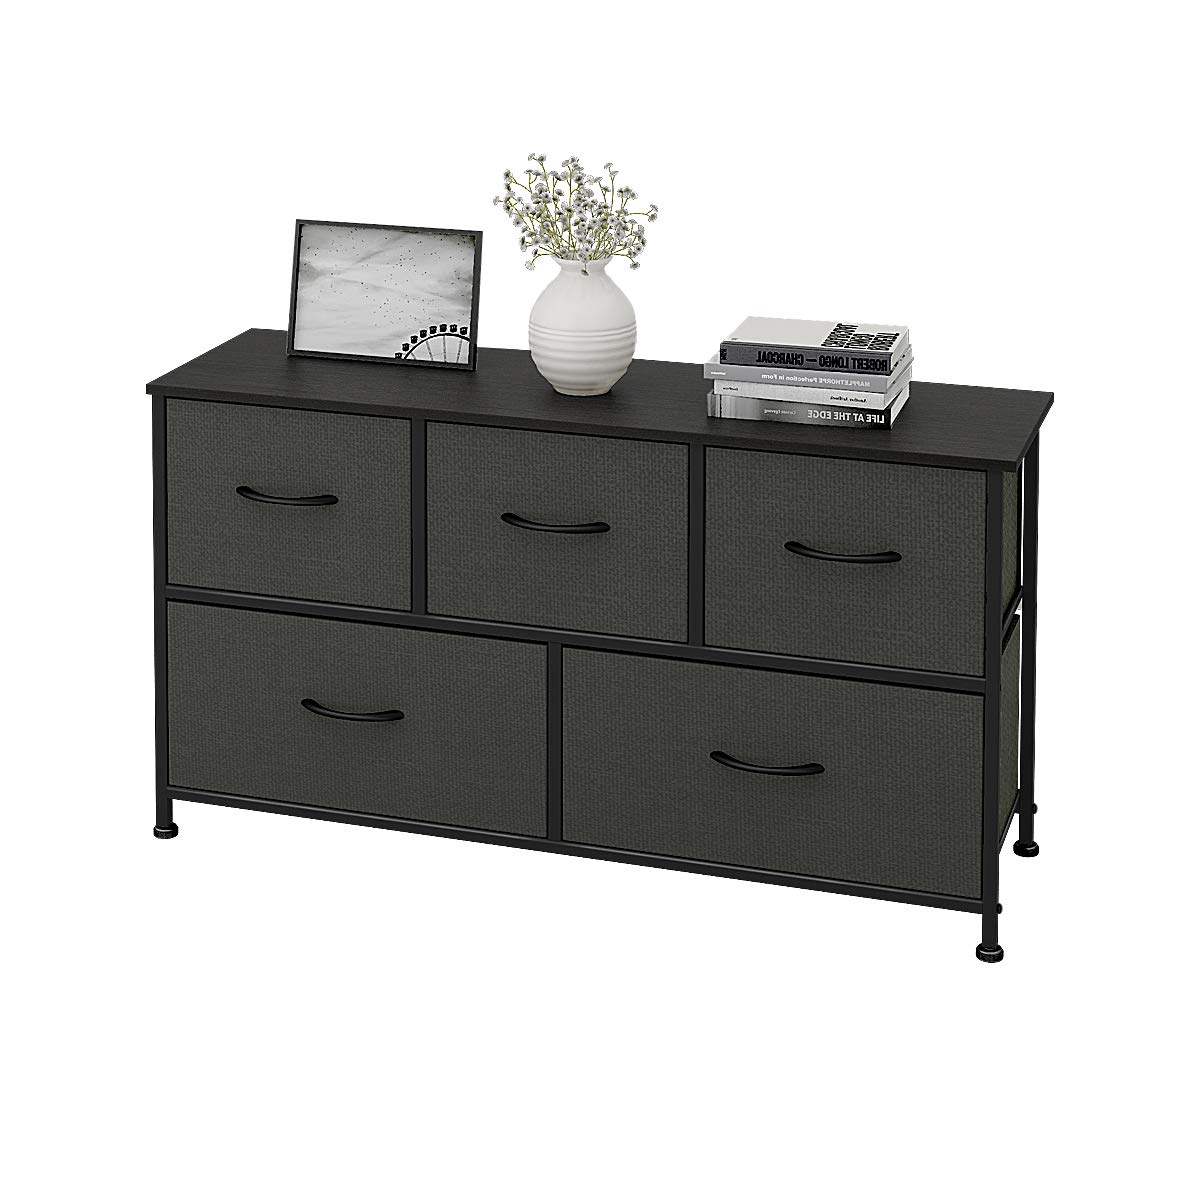 WLIVE Dresser with 5 Drawers, Fabric Storage Tower, Organizer Unit for Bedroom, Hallway, Entryway, Closets, Sturdy Steel Frame, Wood Top, Easy Pull Handle by WLIVE